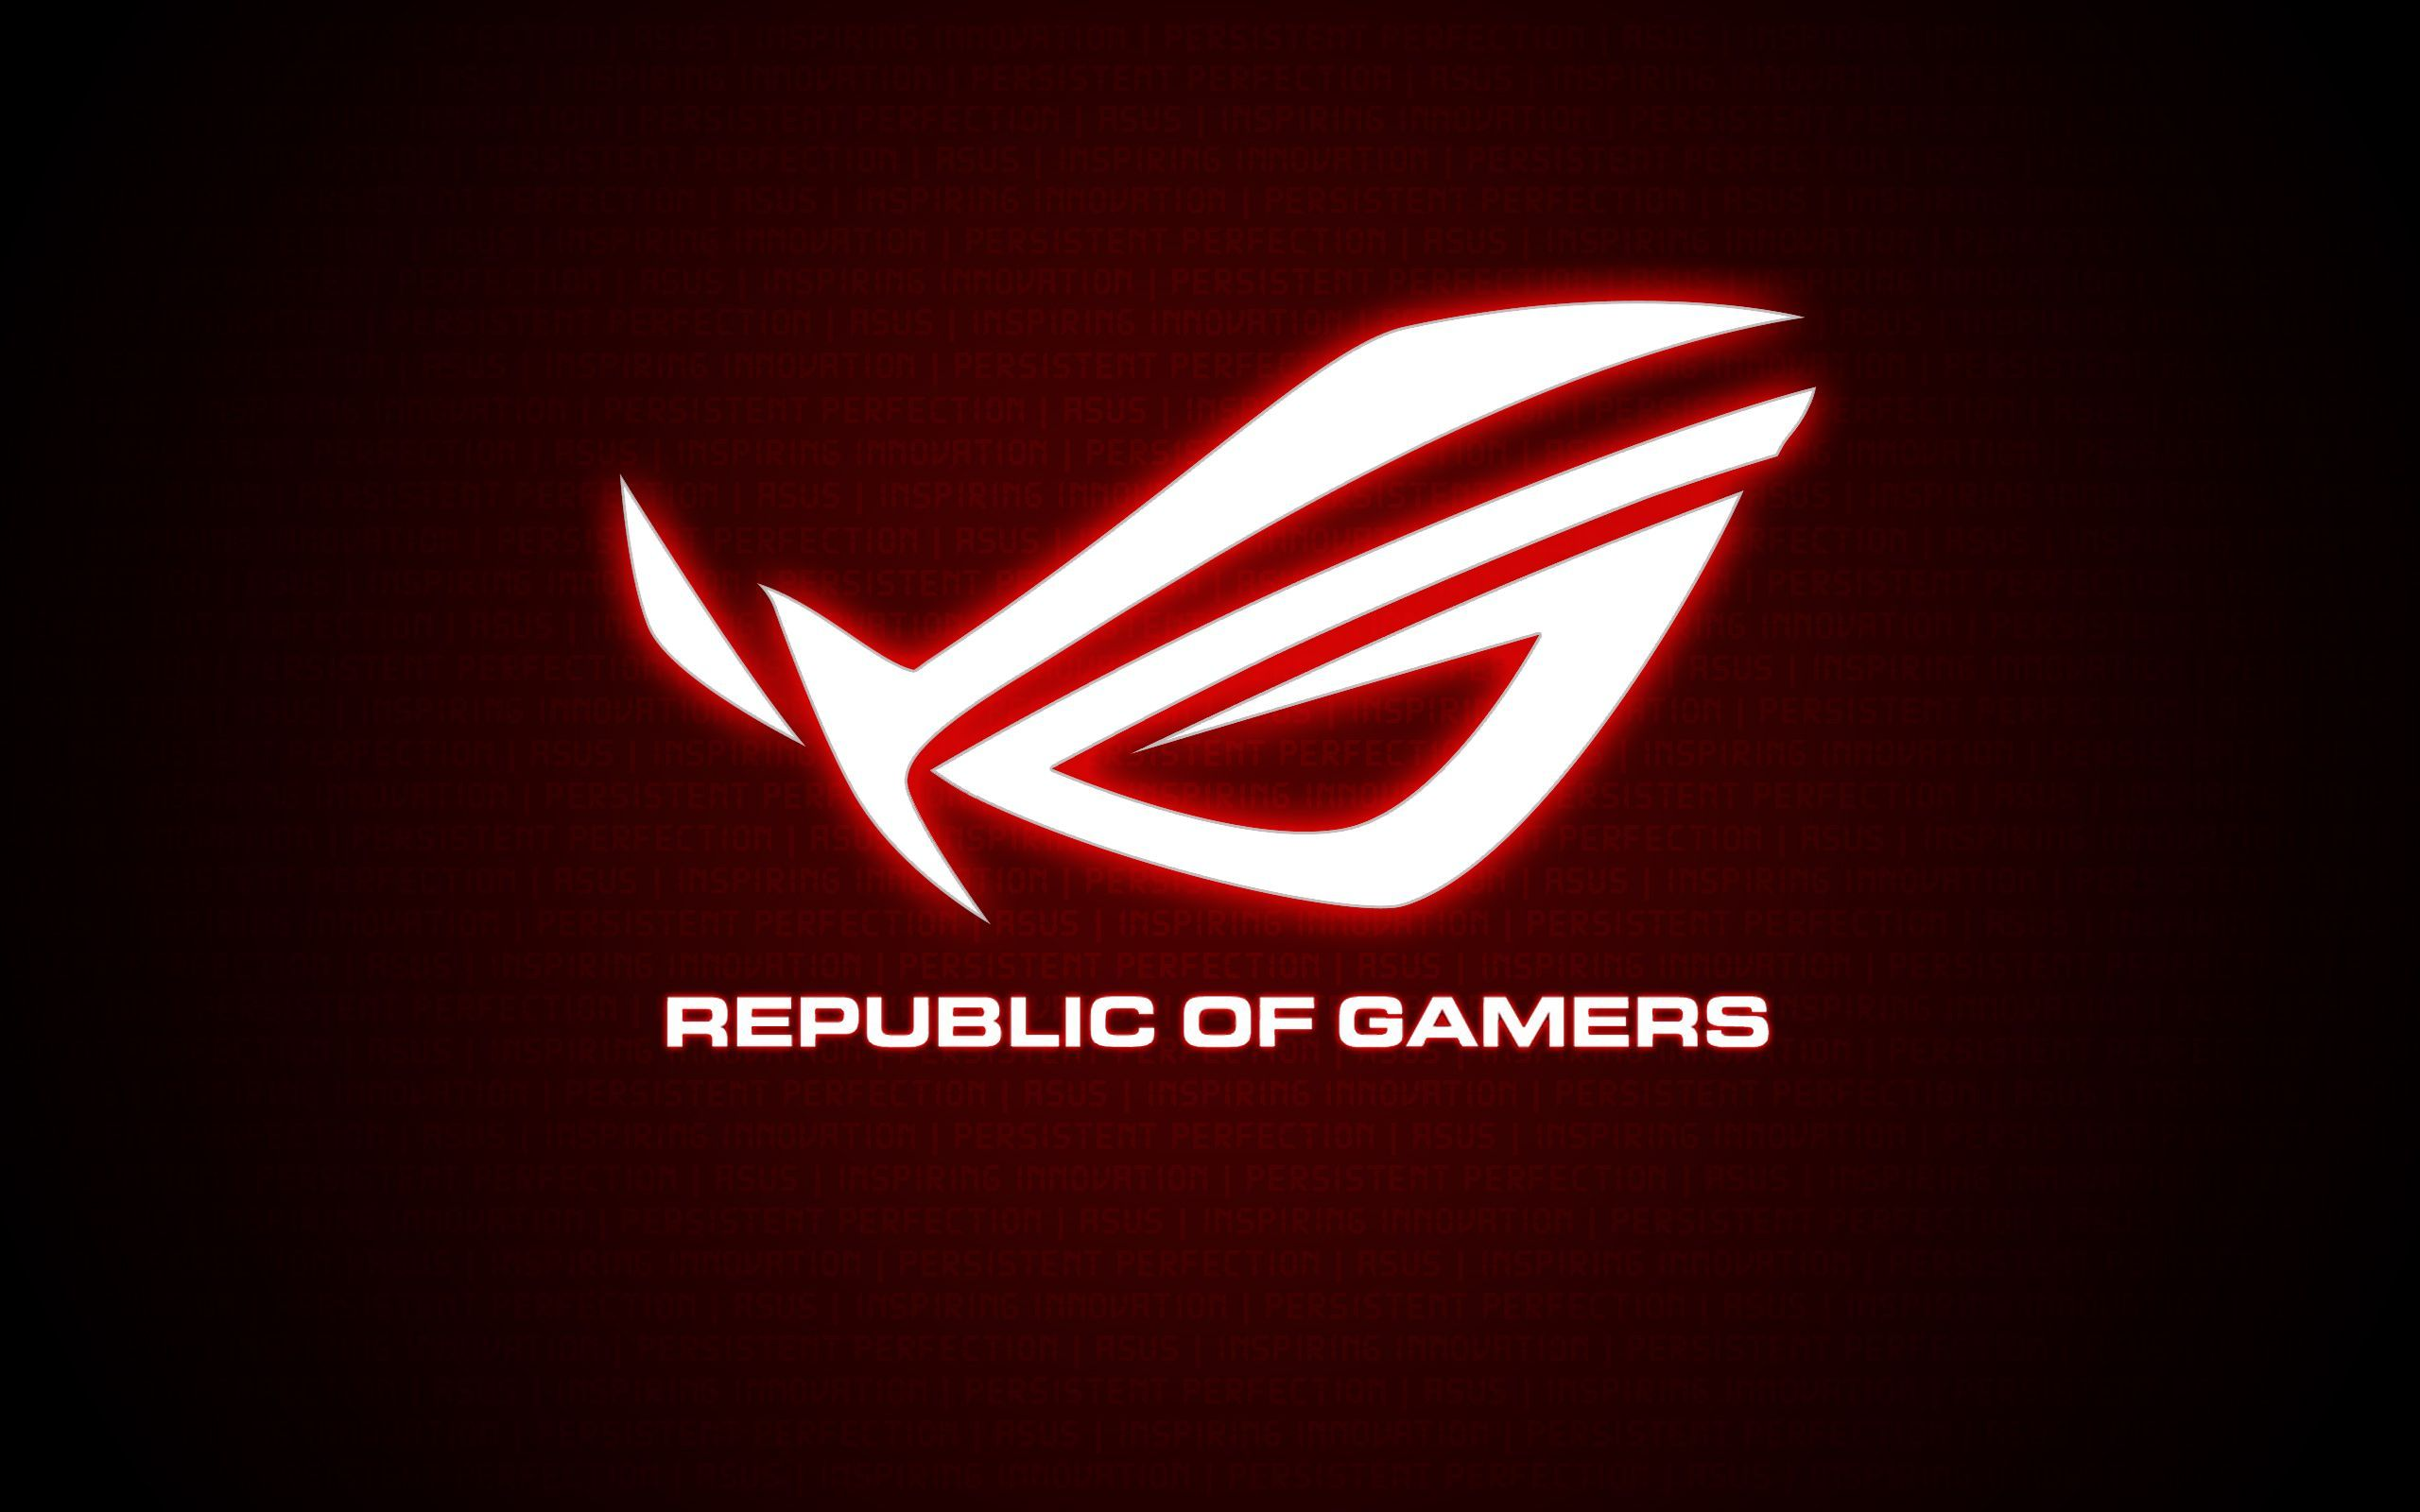 Red Rog Wallpapers Top Free Red Rog Backgrounds Wallpaperaccess